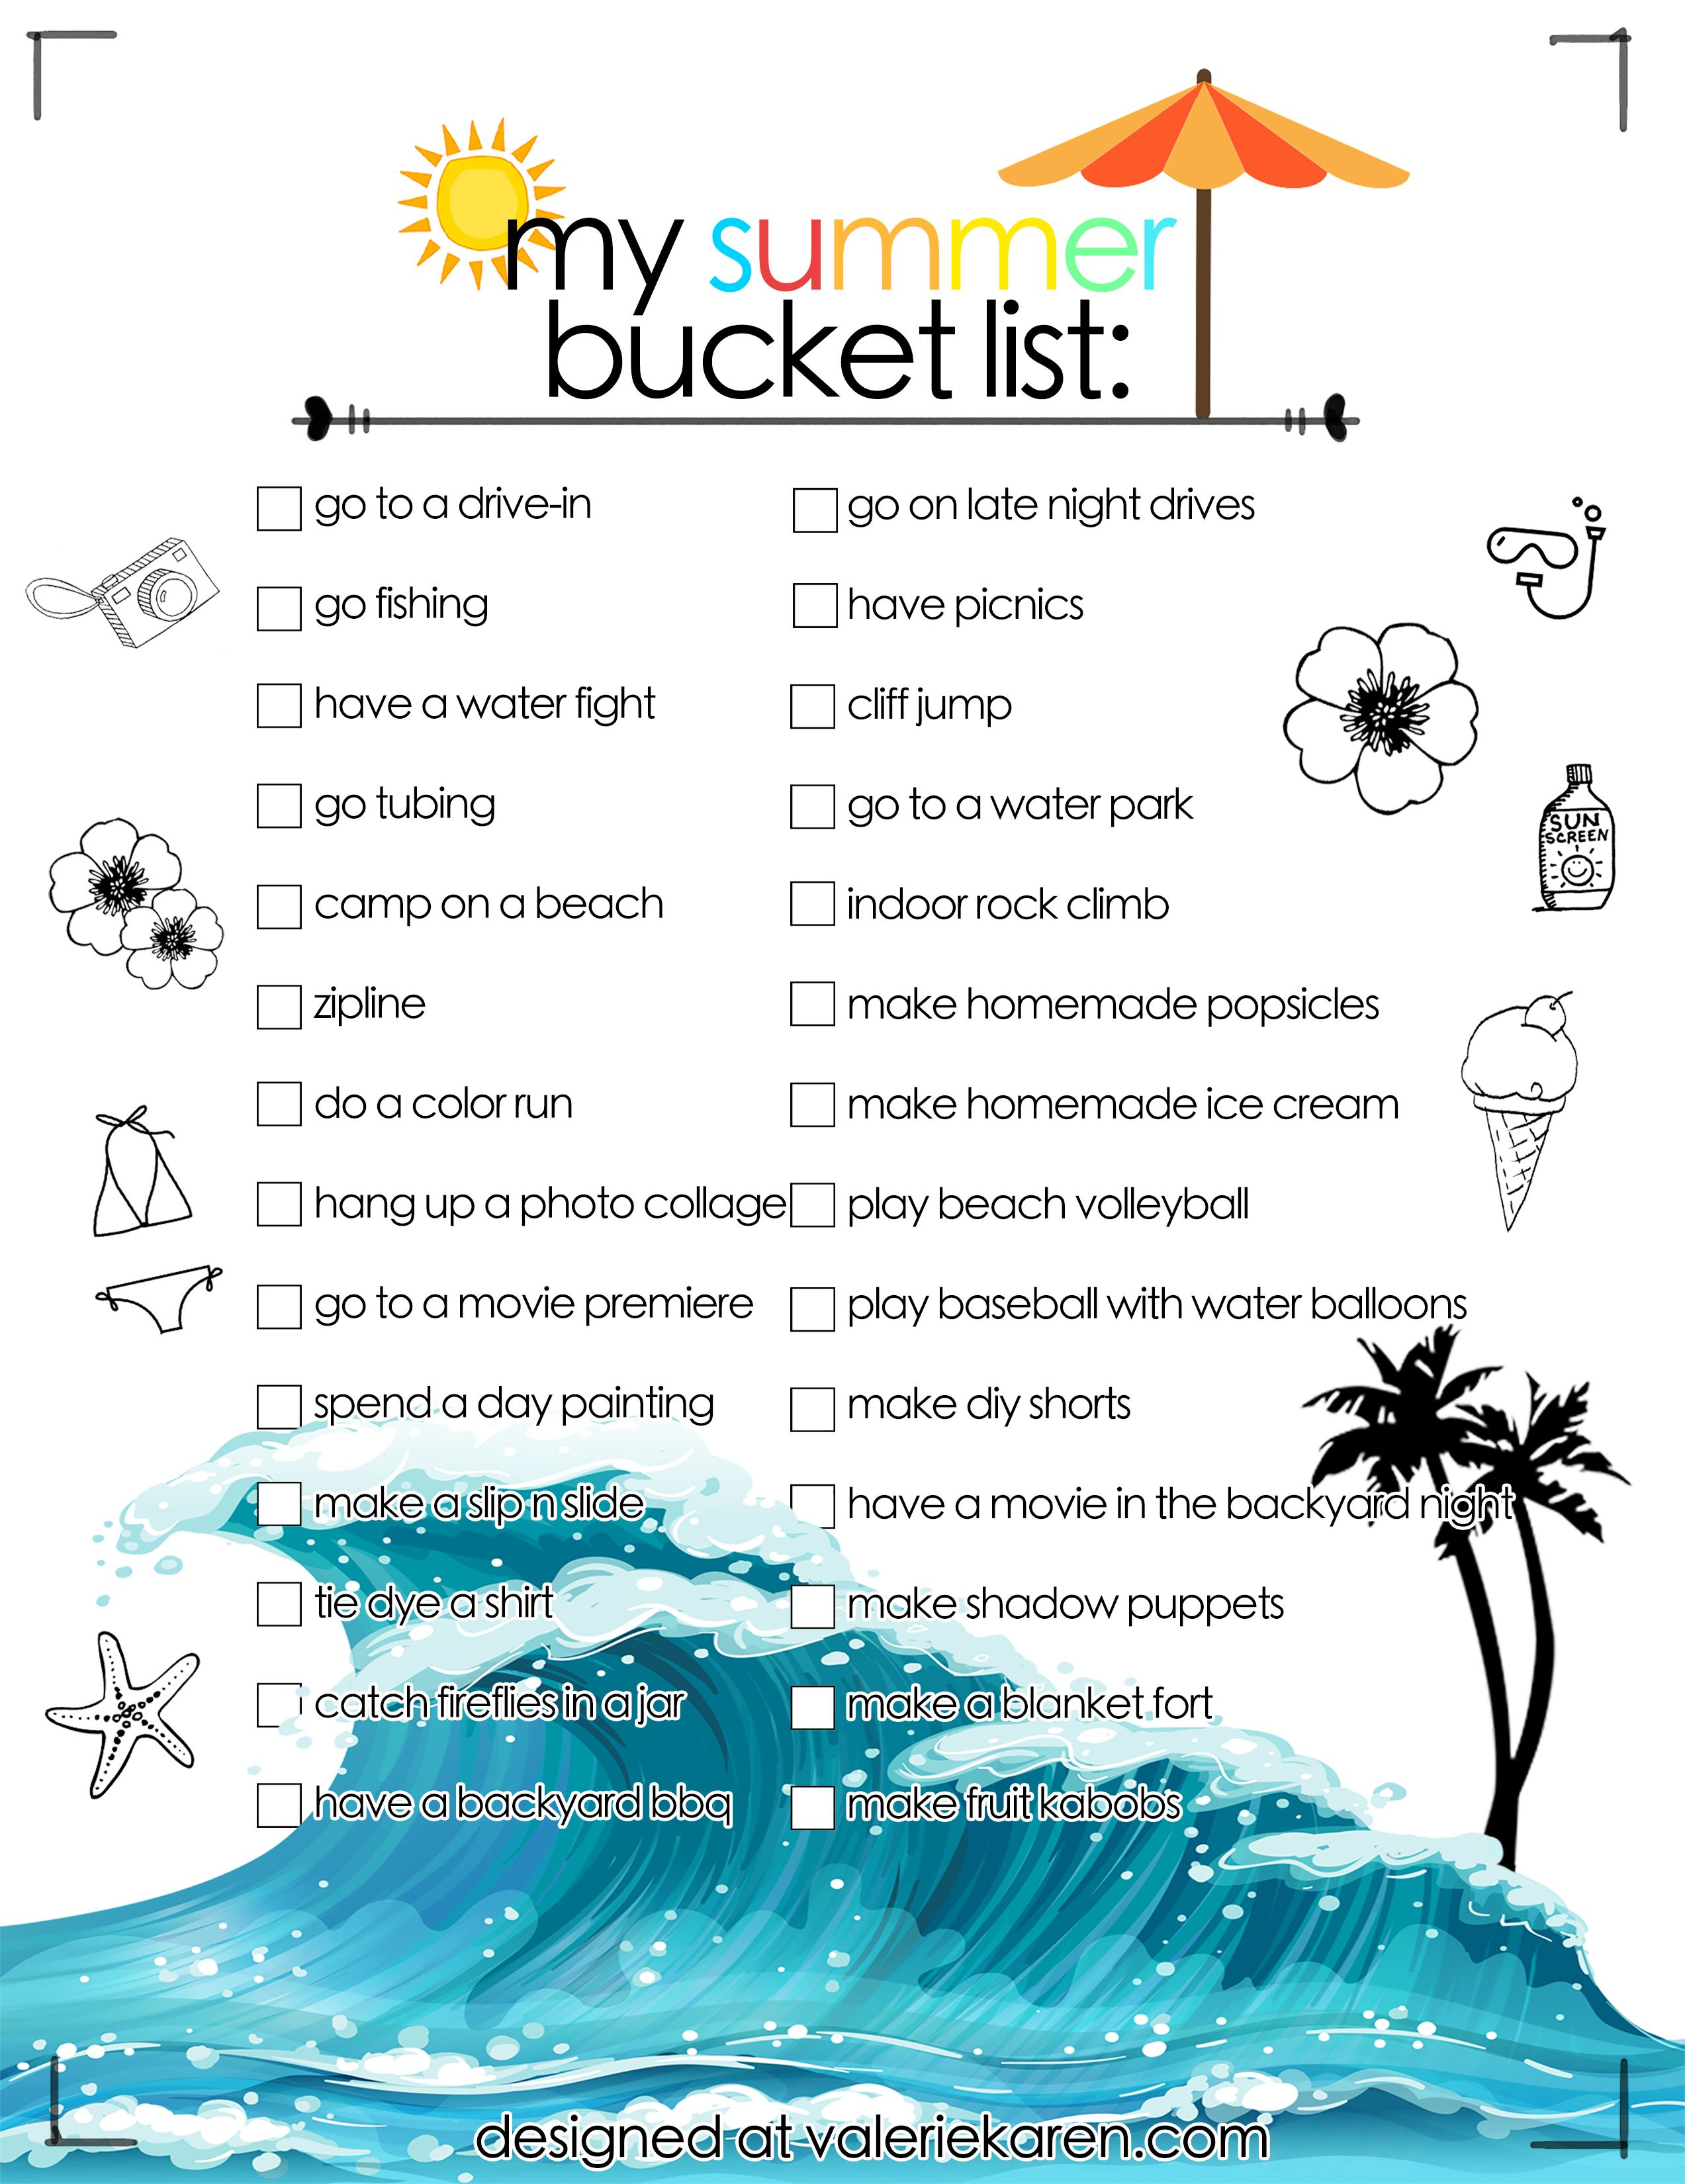 Best Summer Bucket List 2018 Ideas! Includes exciting outdoors ...